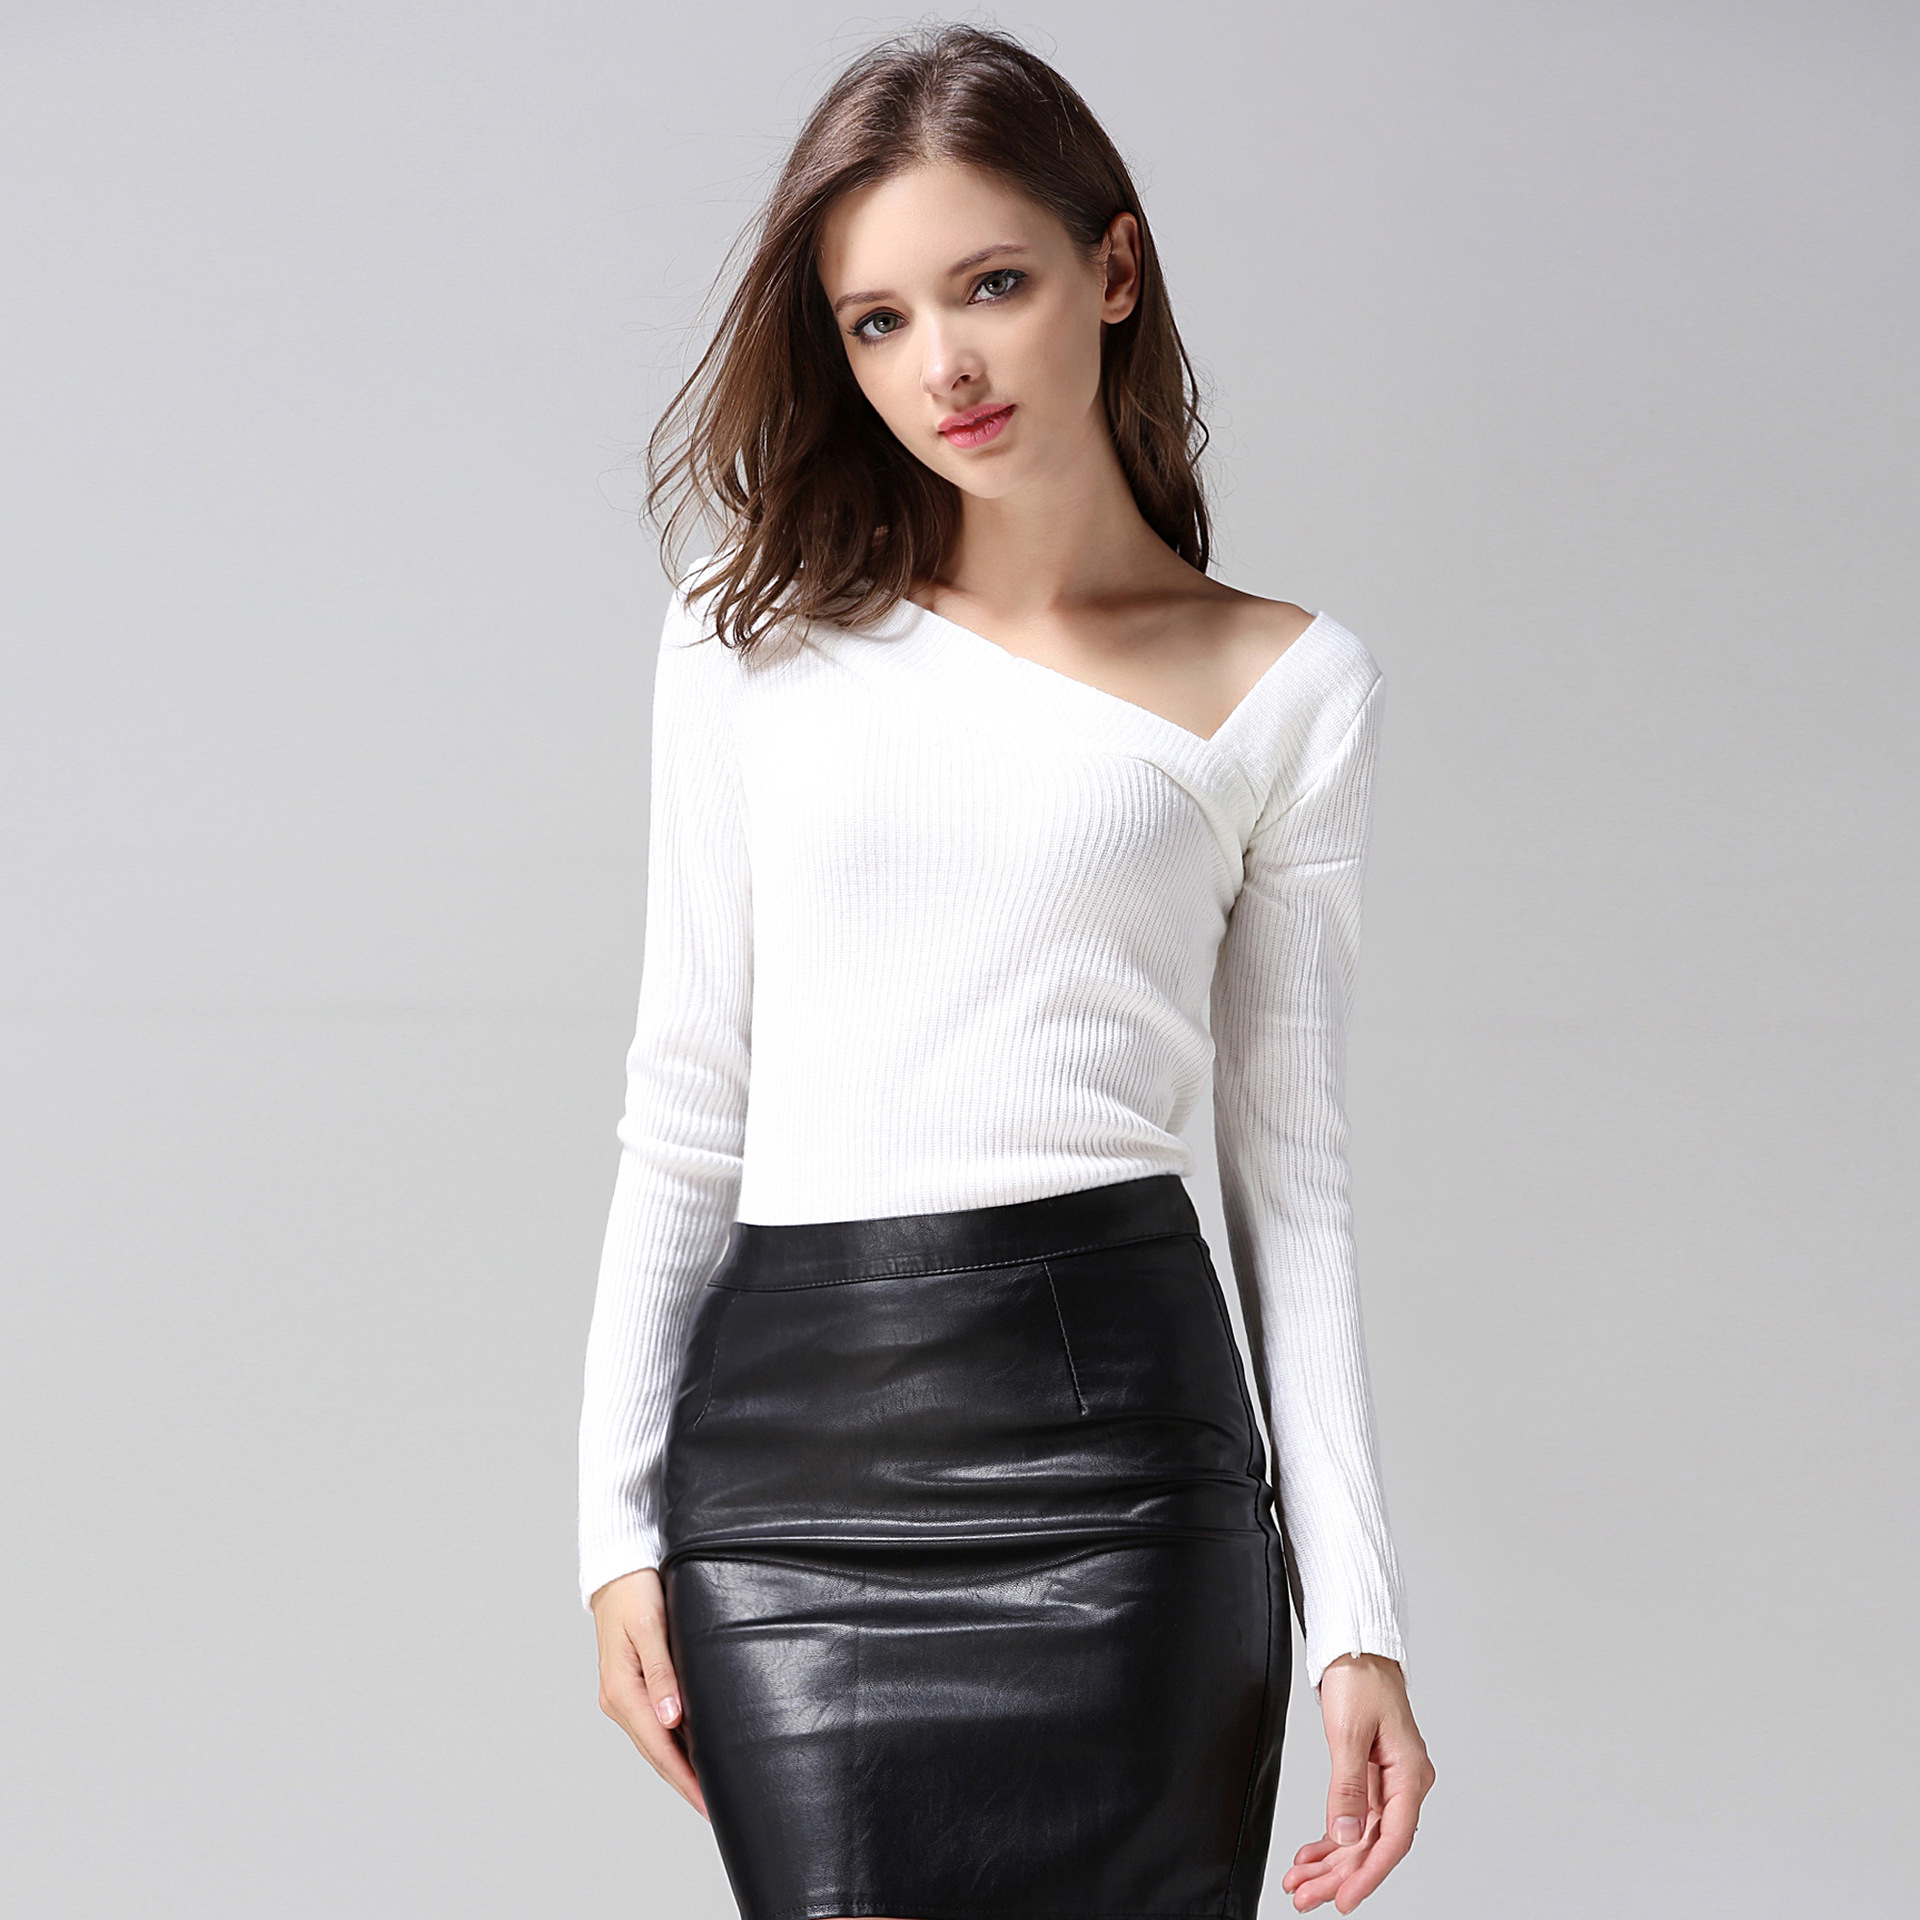 Compare Prices on One Shoulder Off Sweater- Online Shopping/Buy ...